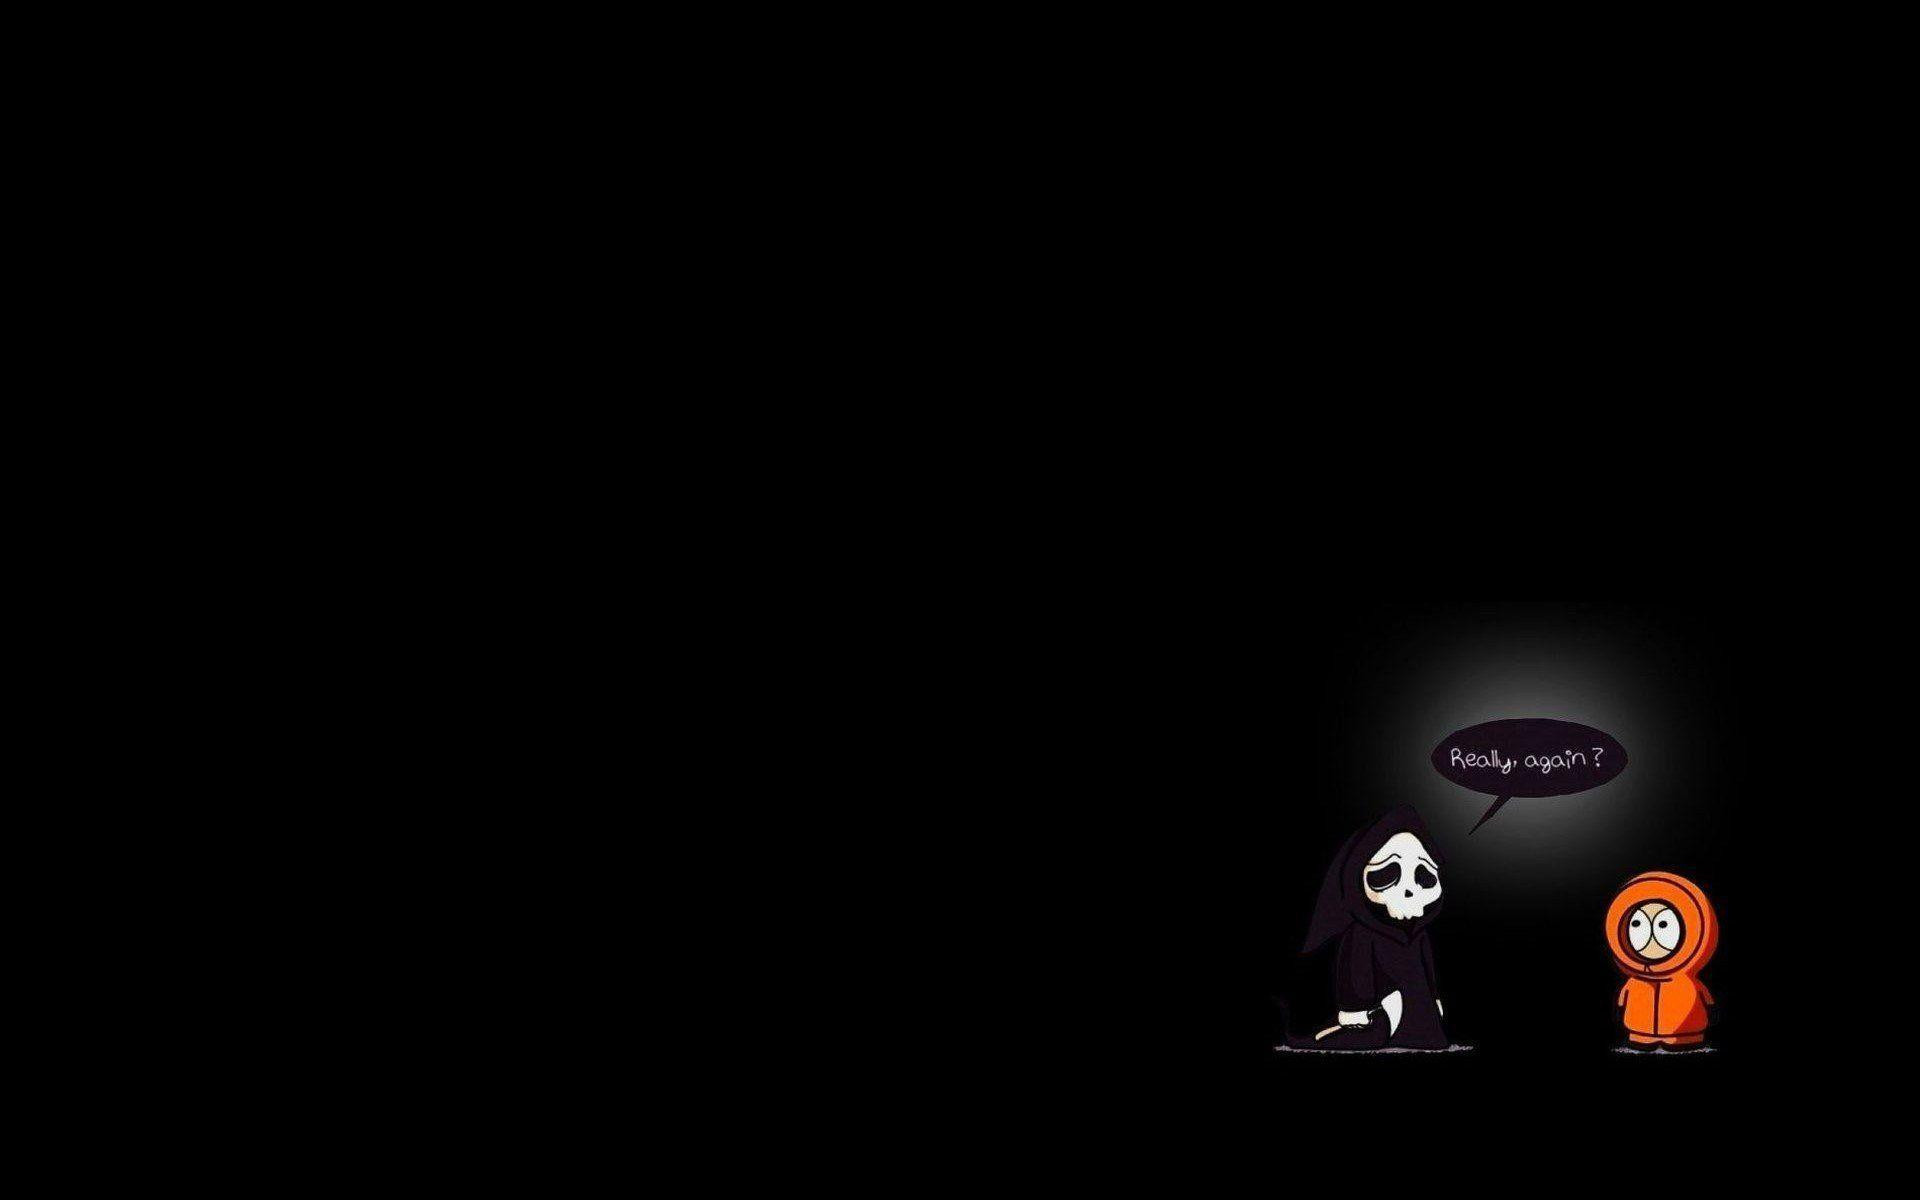 Kenny South Park Wallpapers - Wallpaper Cave